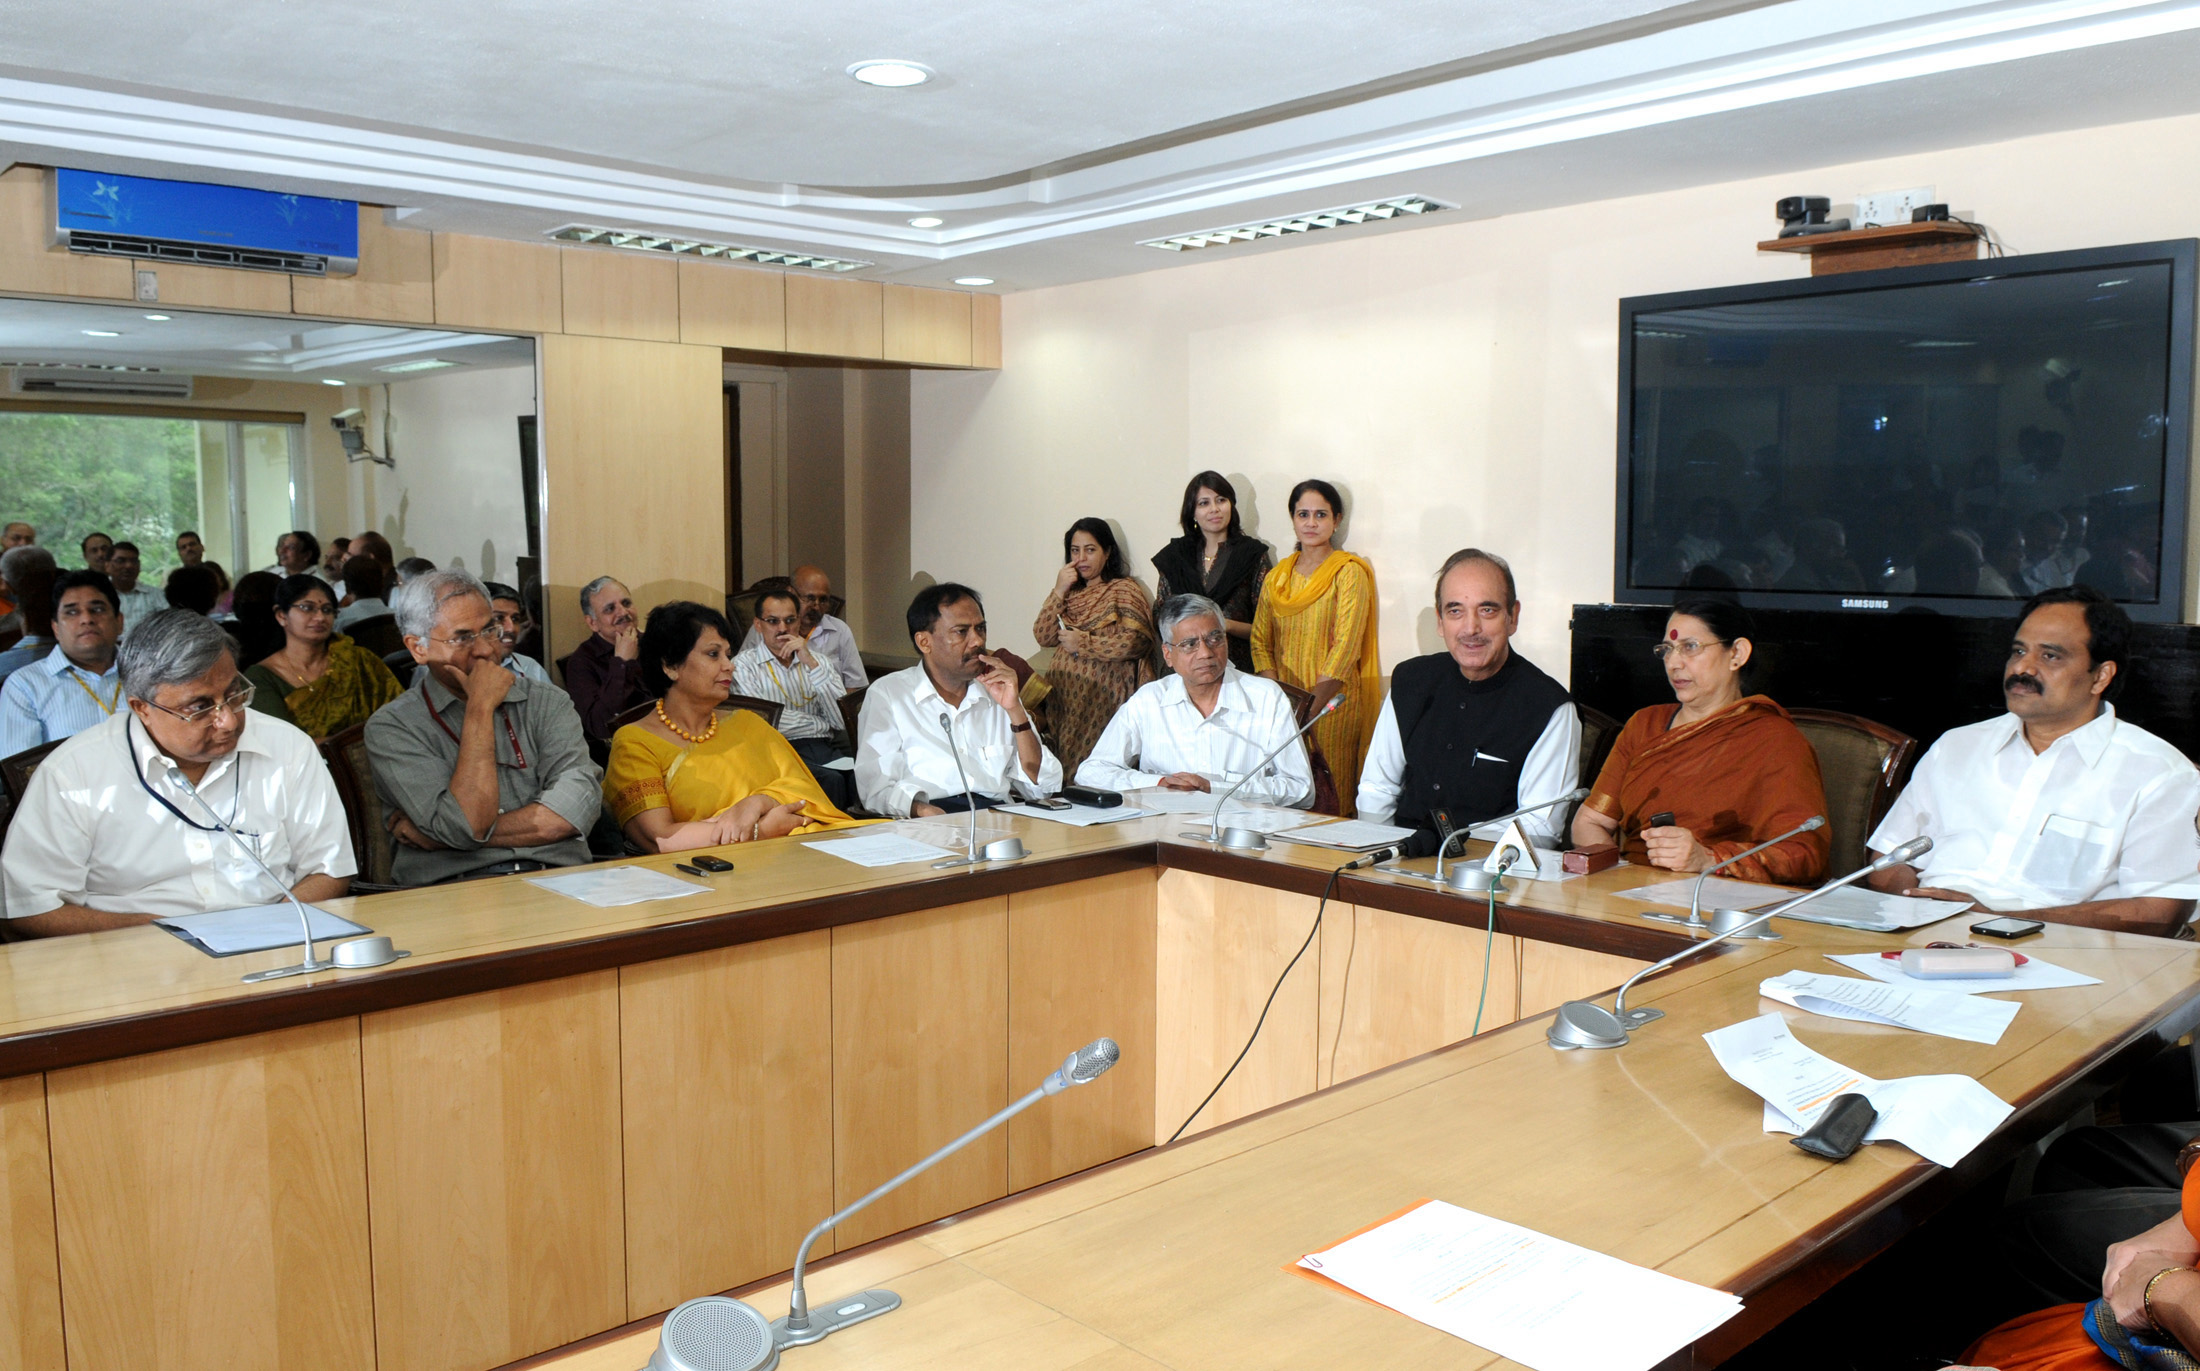 the Union Minister for Health and Family Welfare, Shri Ghulam Nabi Azad and Minister of State of Health and Family Welfare (1).jpg English: The Minister